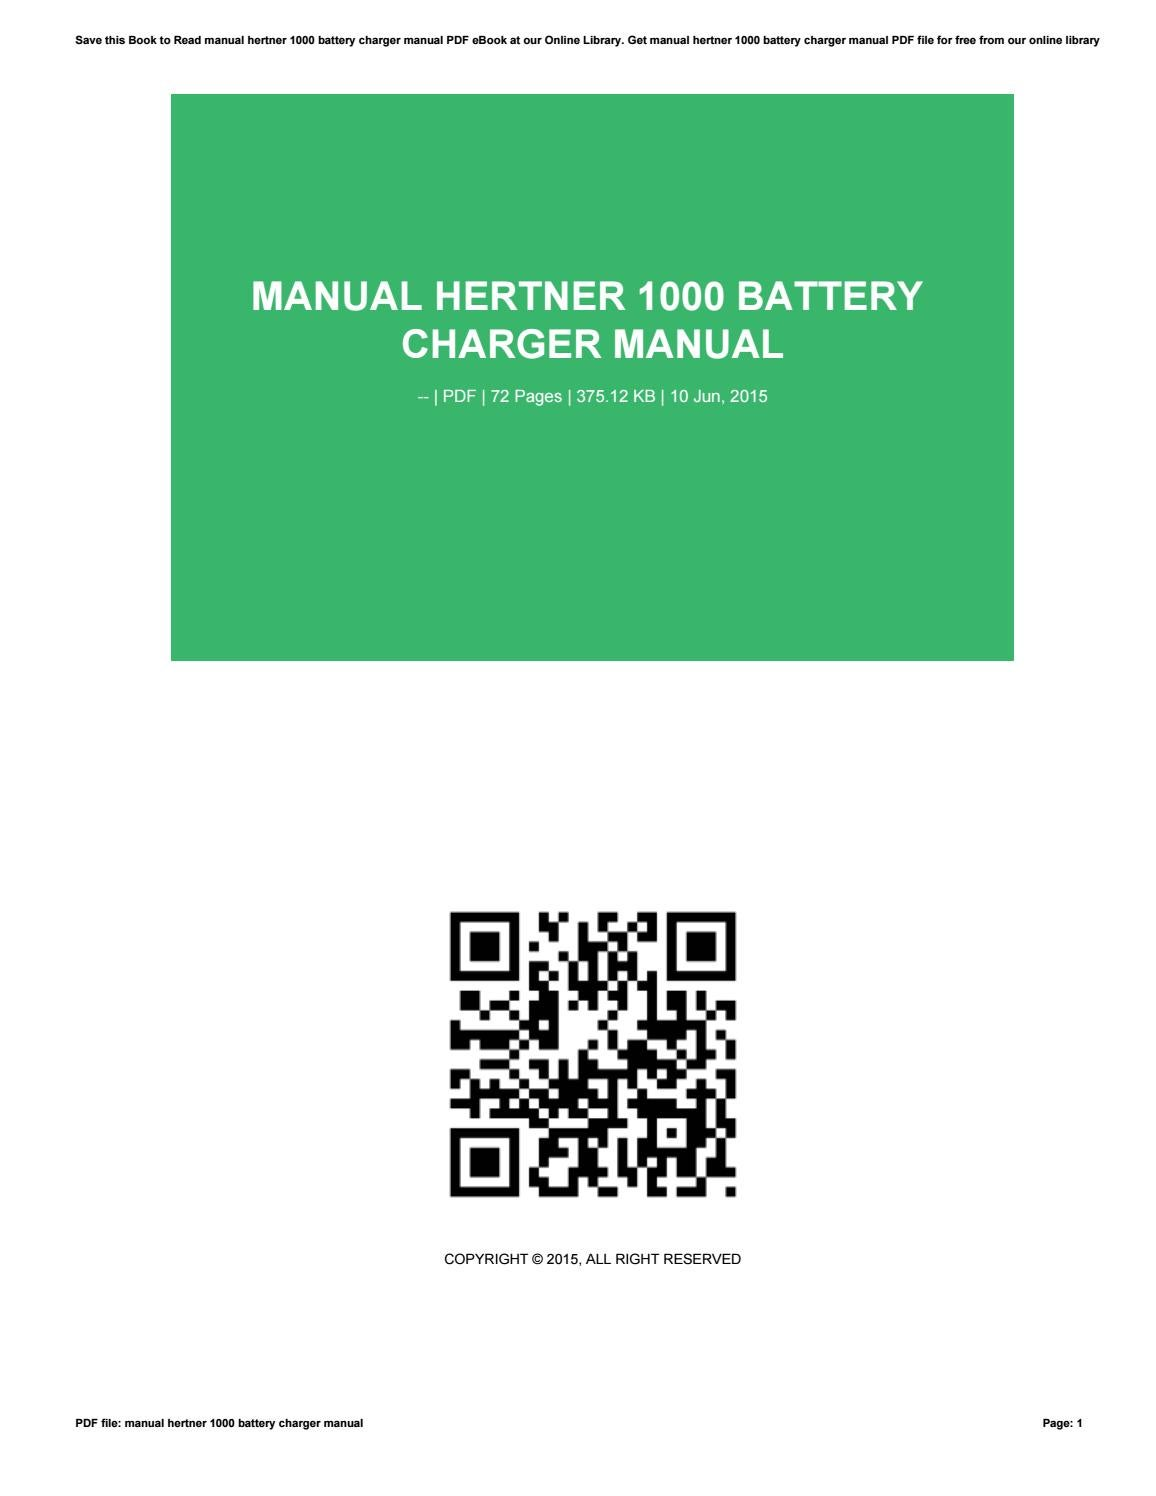 Hertner charger manual Auto 5000 on